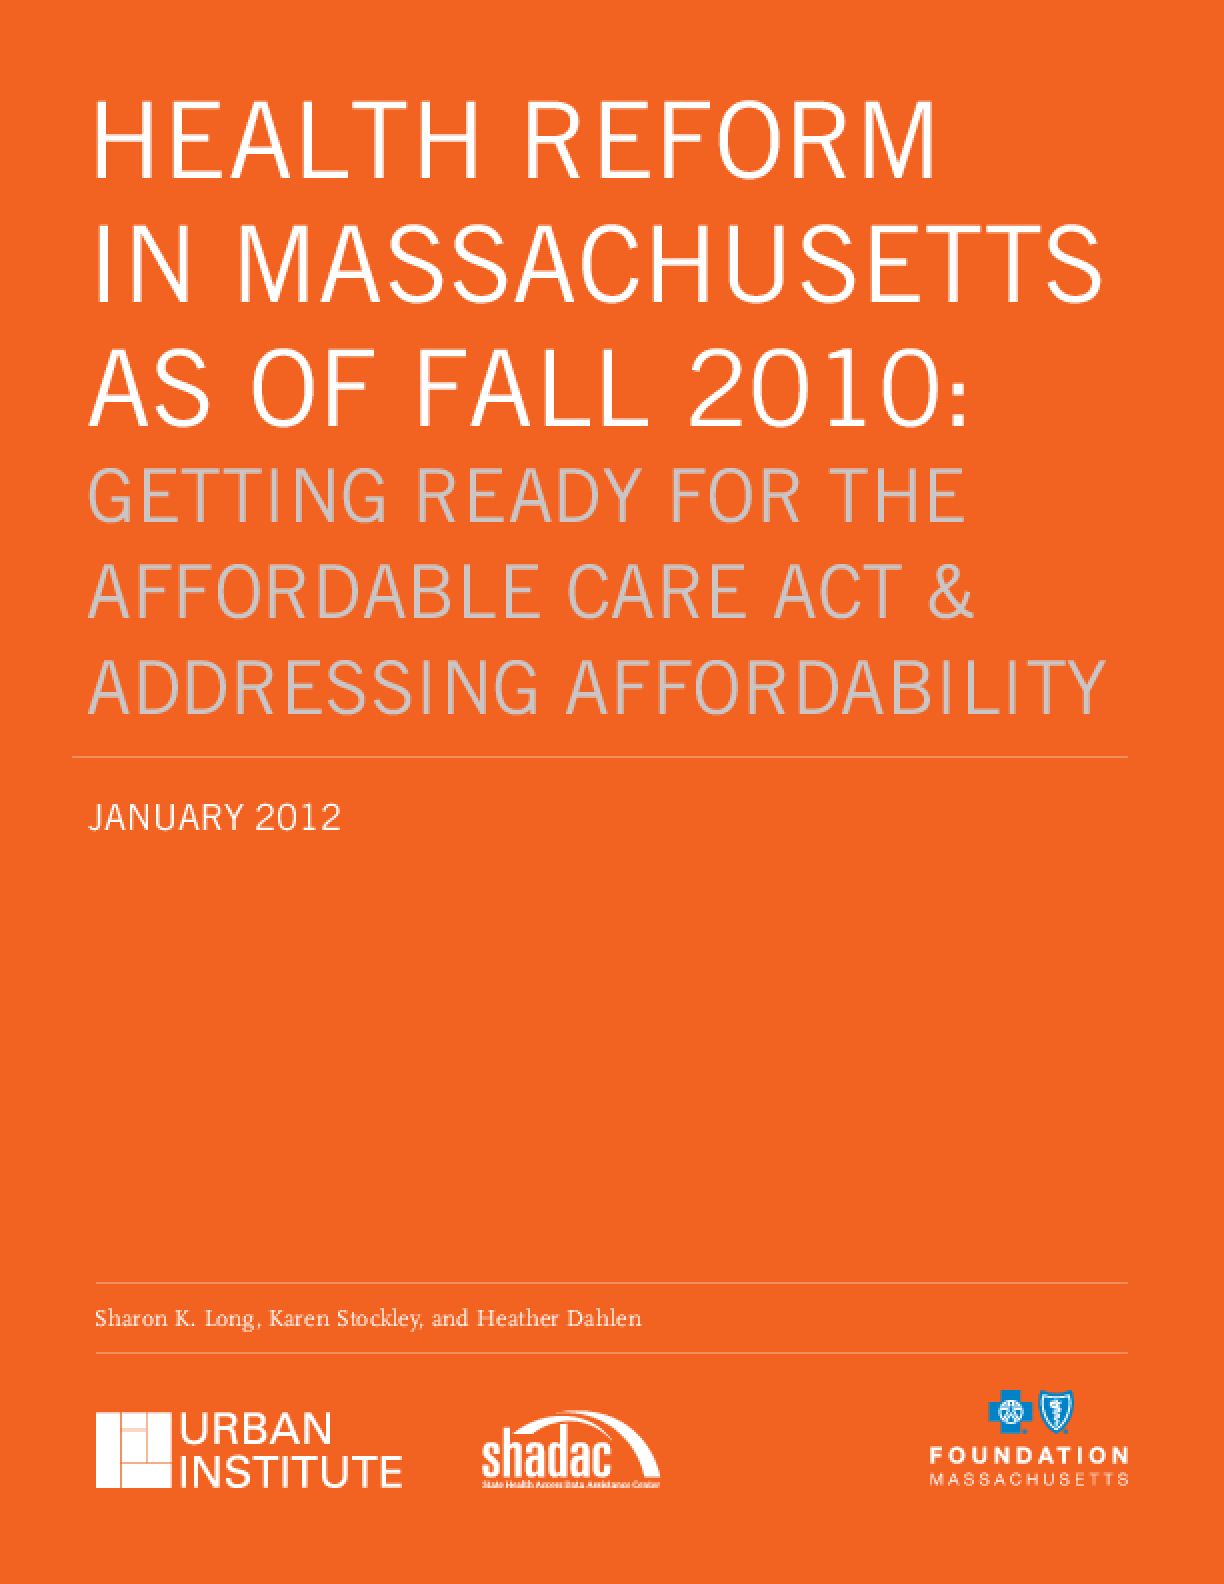 Health Reform in Massachusetts as of Fall 2010: Getting Ready for the Affordable Care Act & Addressing Affordability